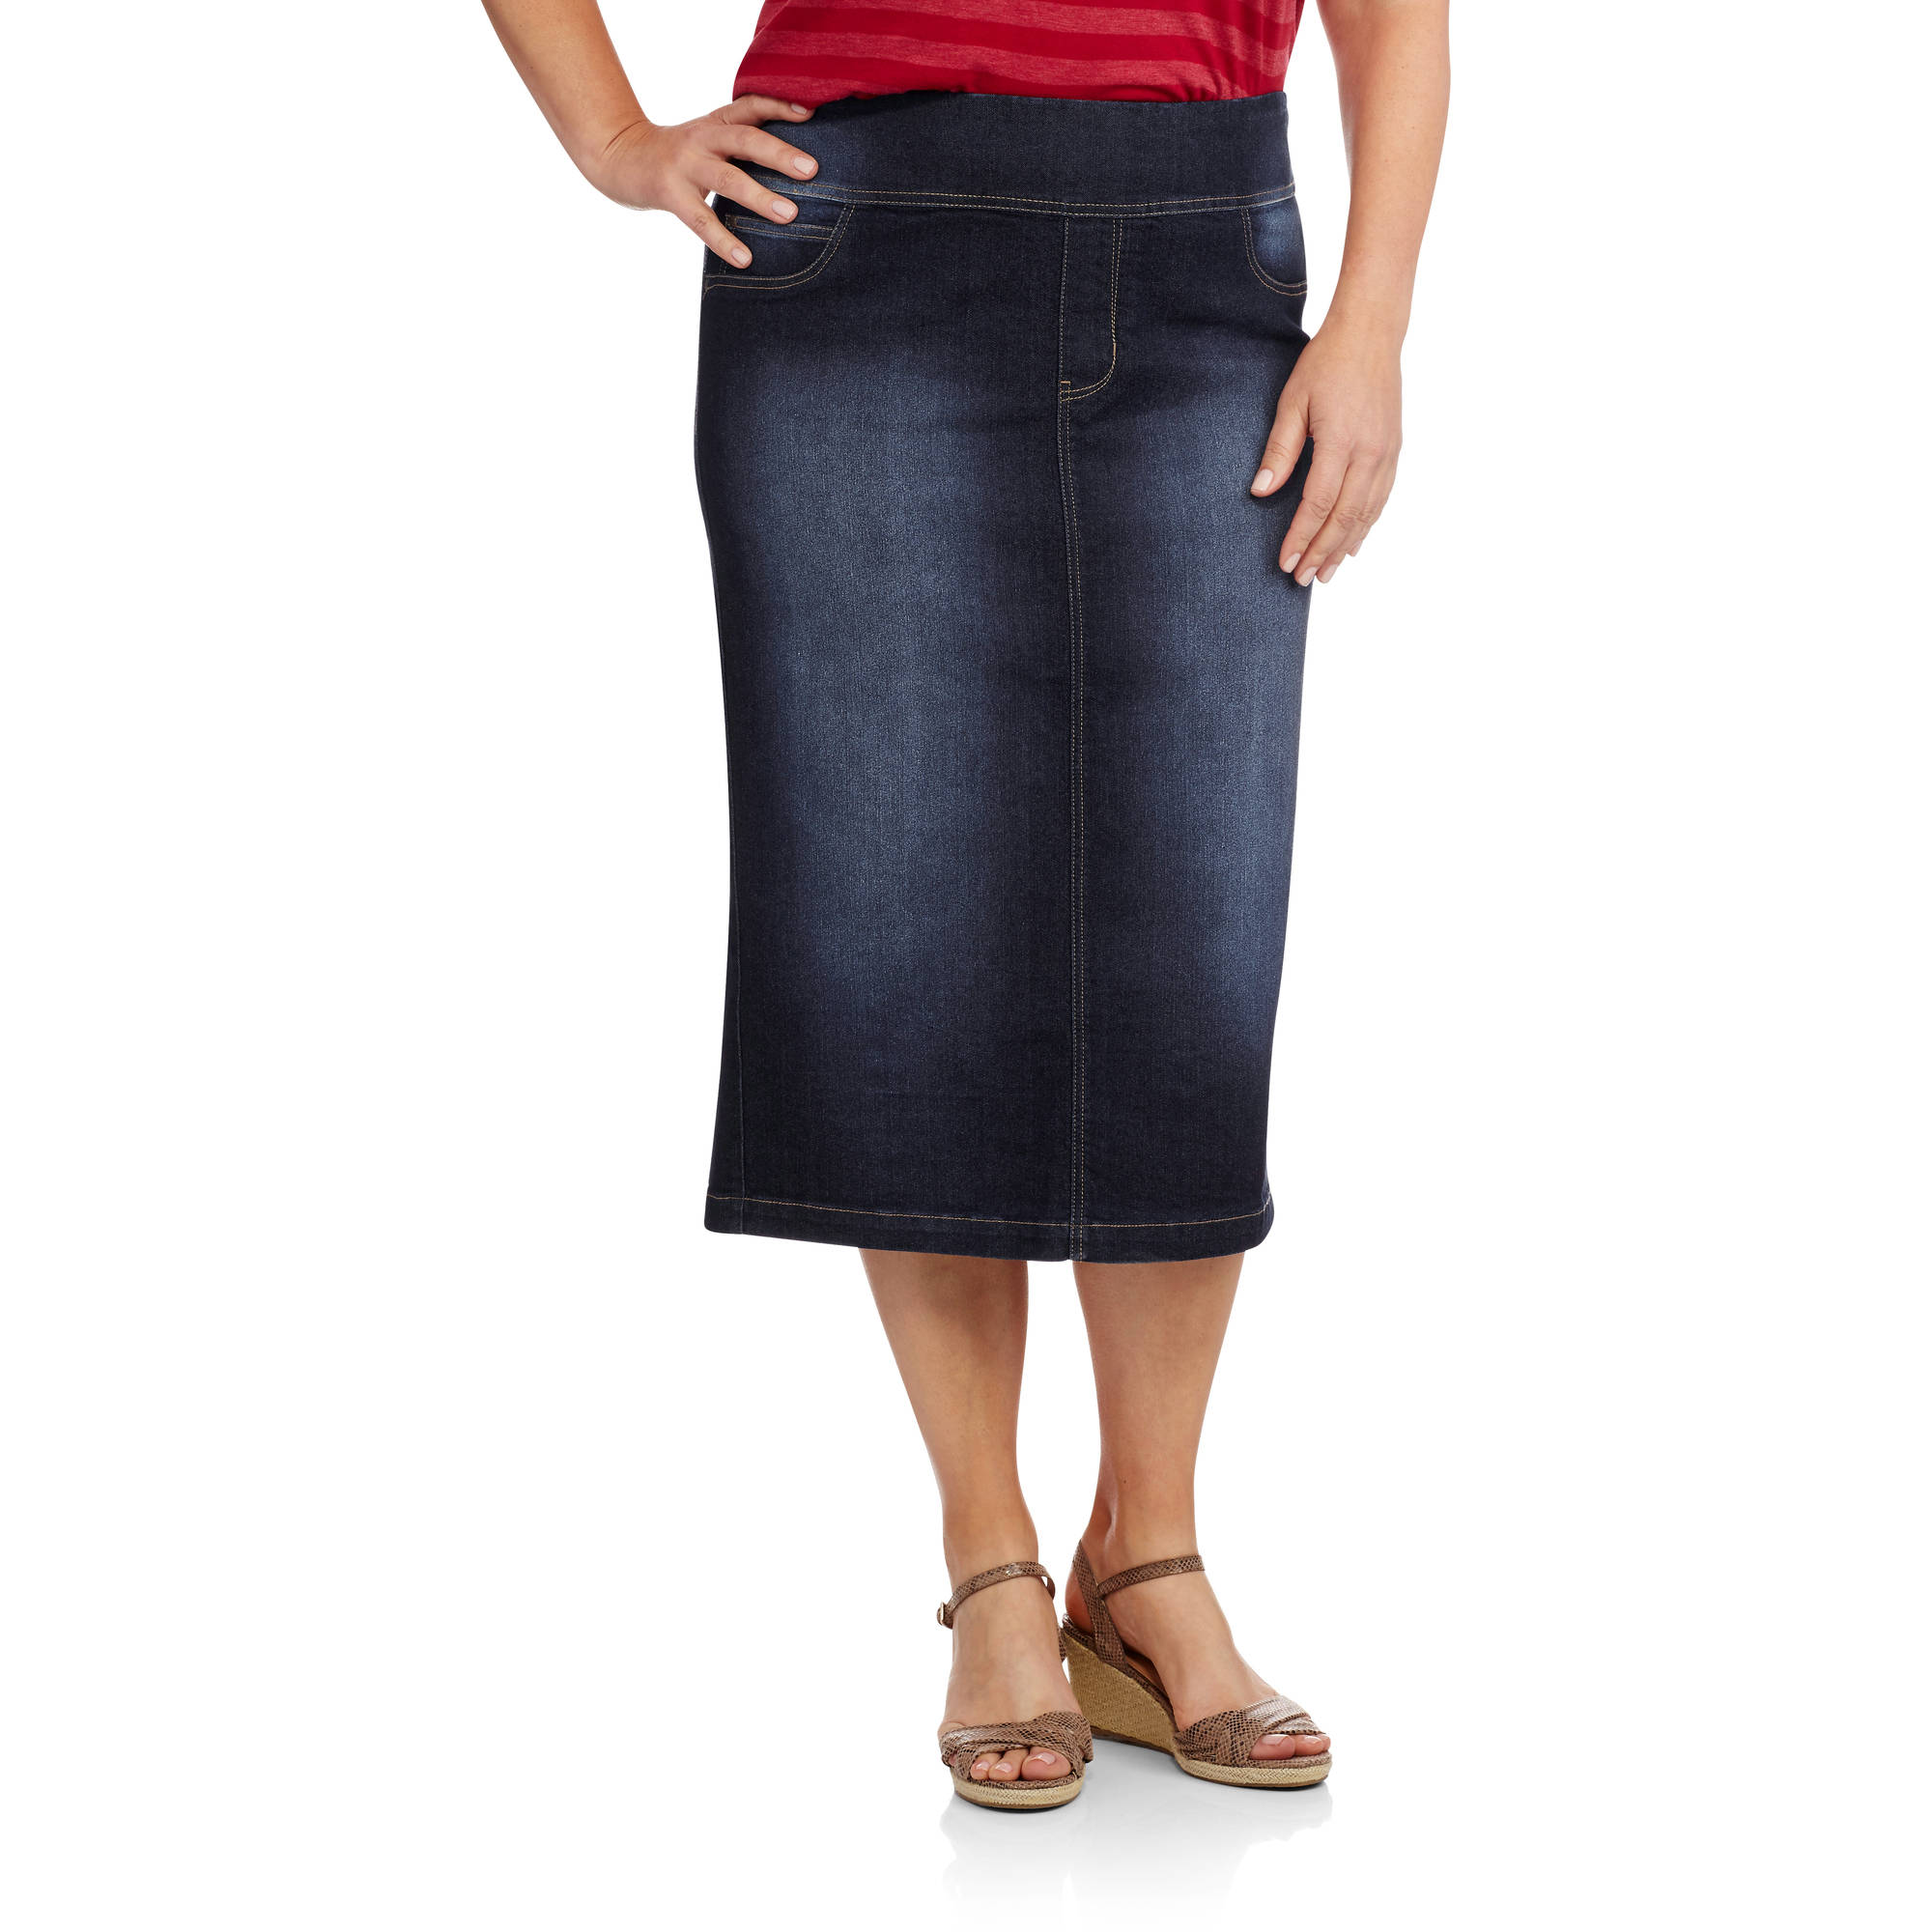 Faded Glory Women's Plus-Size Pull-On Denim Skirt - Walmart.com